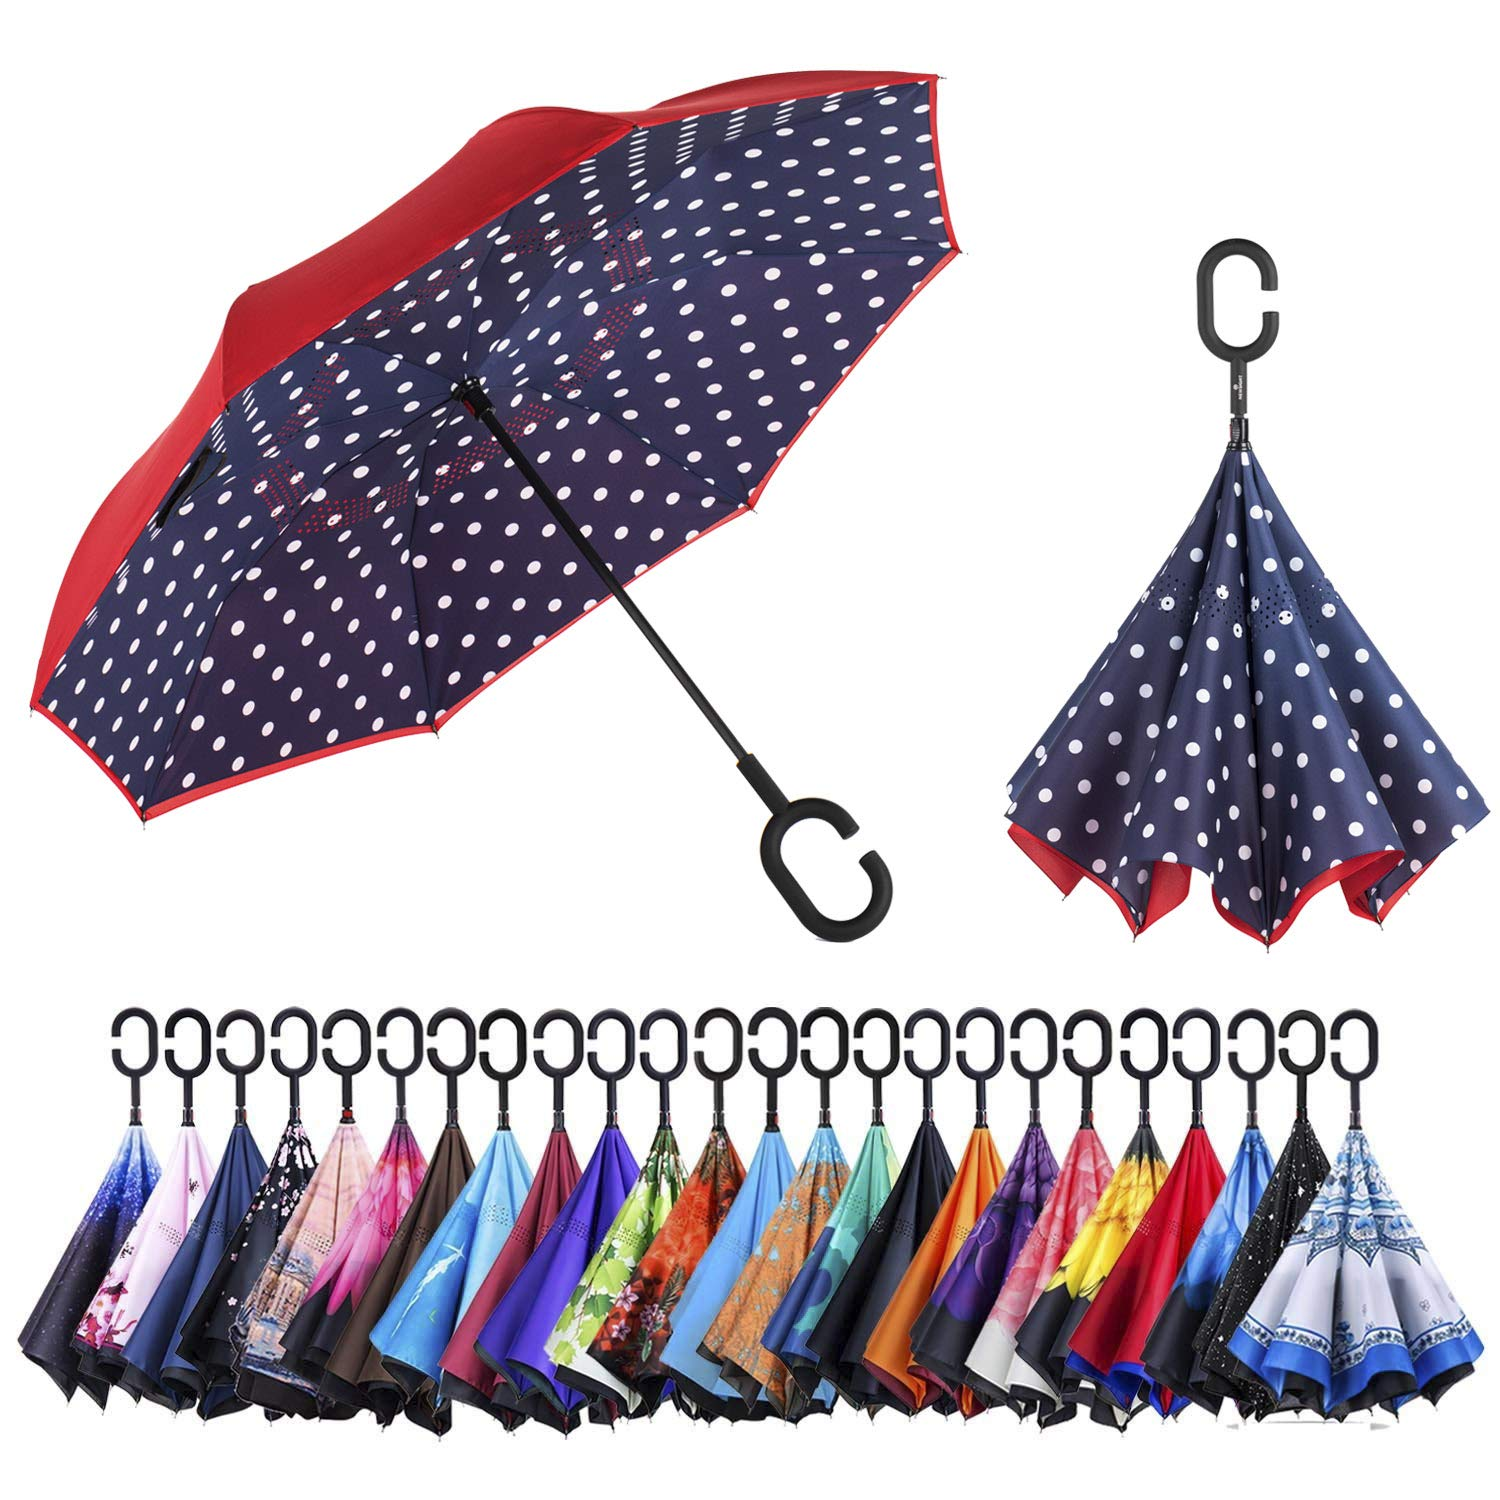 AmaGo Inverted Umbrella – Reverse Double Layer Long Umbrella, C-Shape Handle & Self-Stand to Spare Hands, Inside-Out Fold to Keep Cars & Drivers Dry, Carrying Bag for Easy Traveling (Dot)